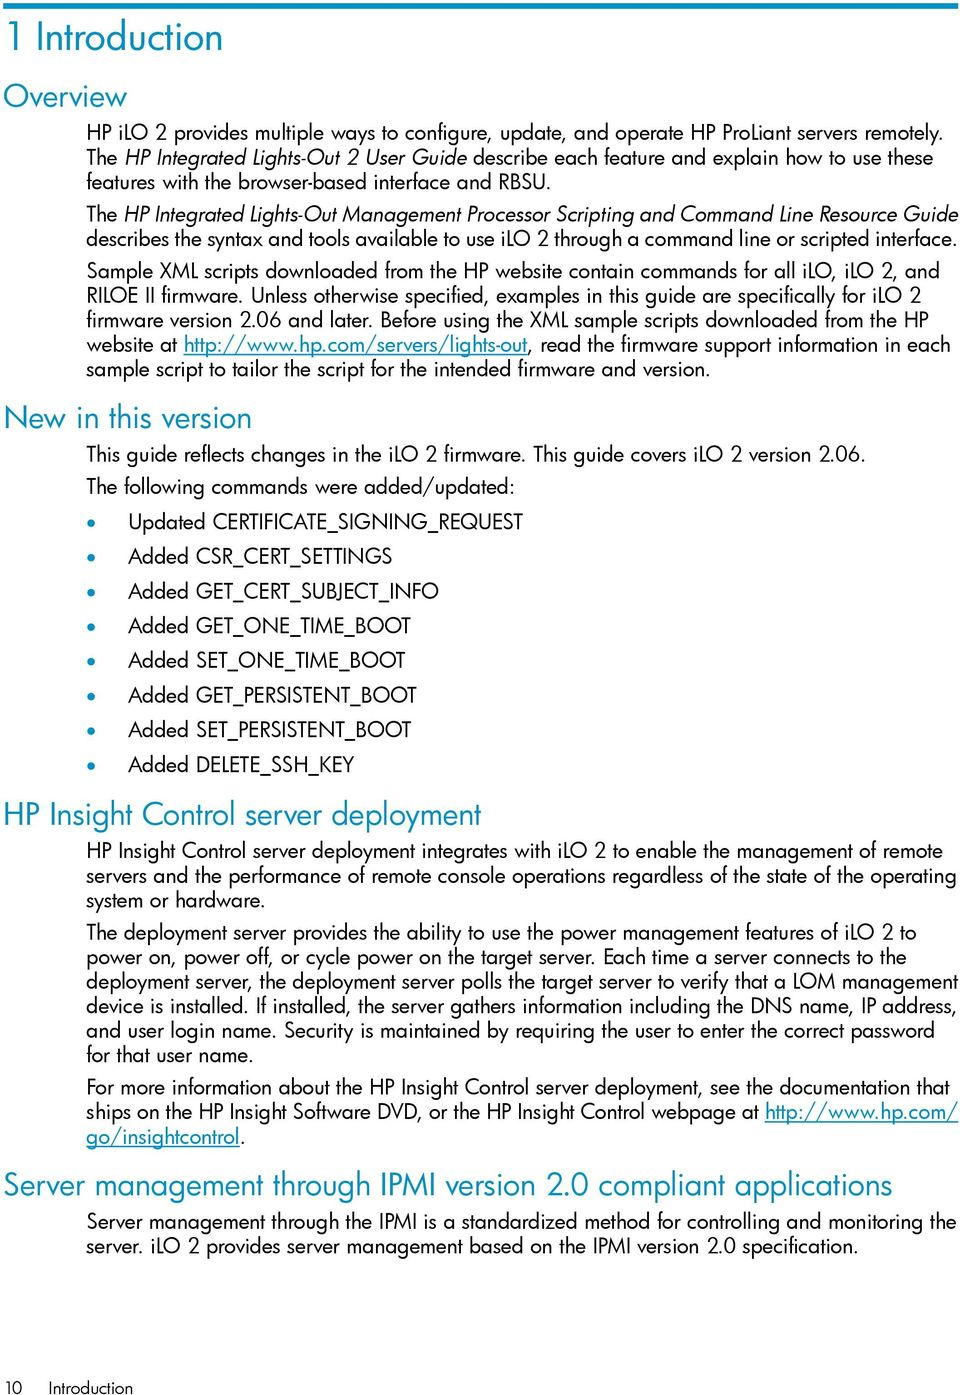 The HP Integrated Lights-Out Management Processor Scripting and Command Line Resource Guide describes the syntax and tools available to use ilo 2 through a command line or scripted interface.